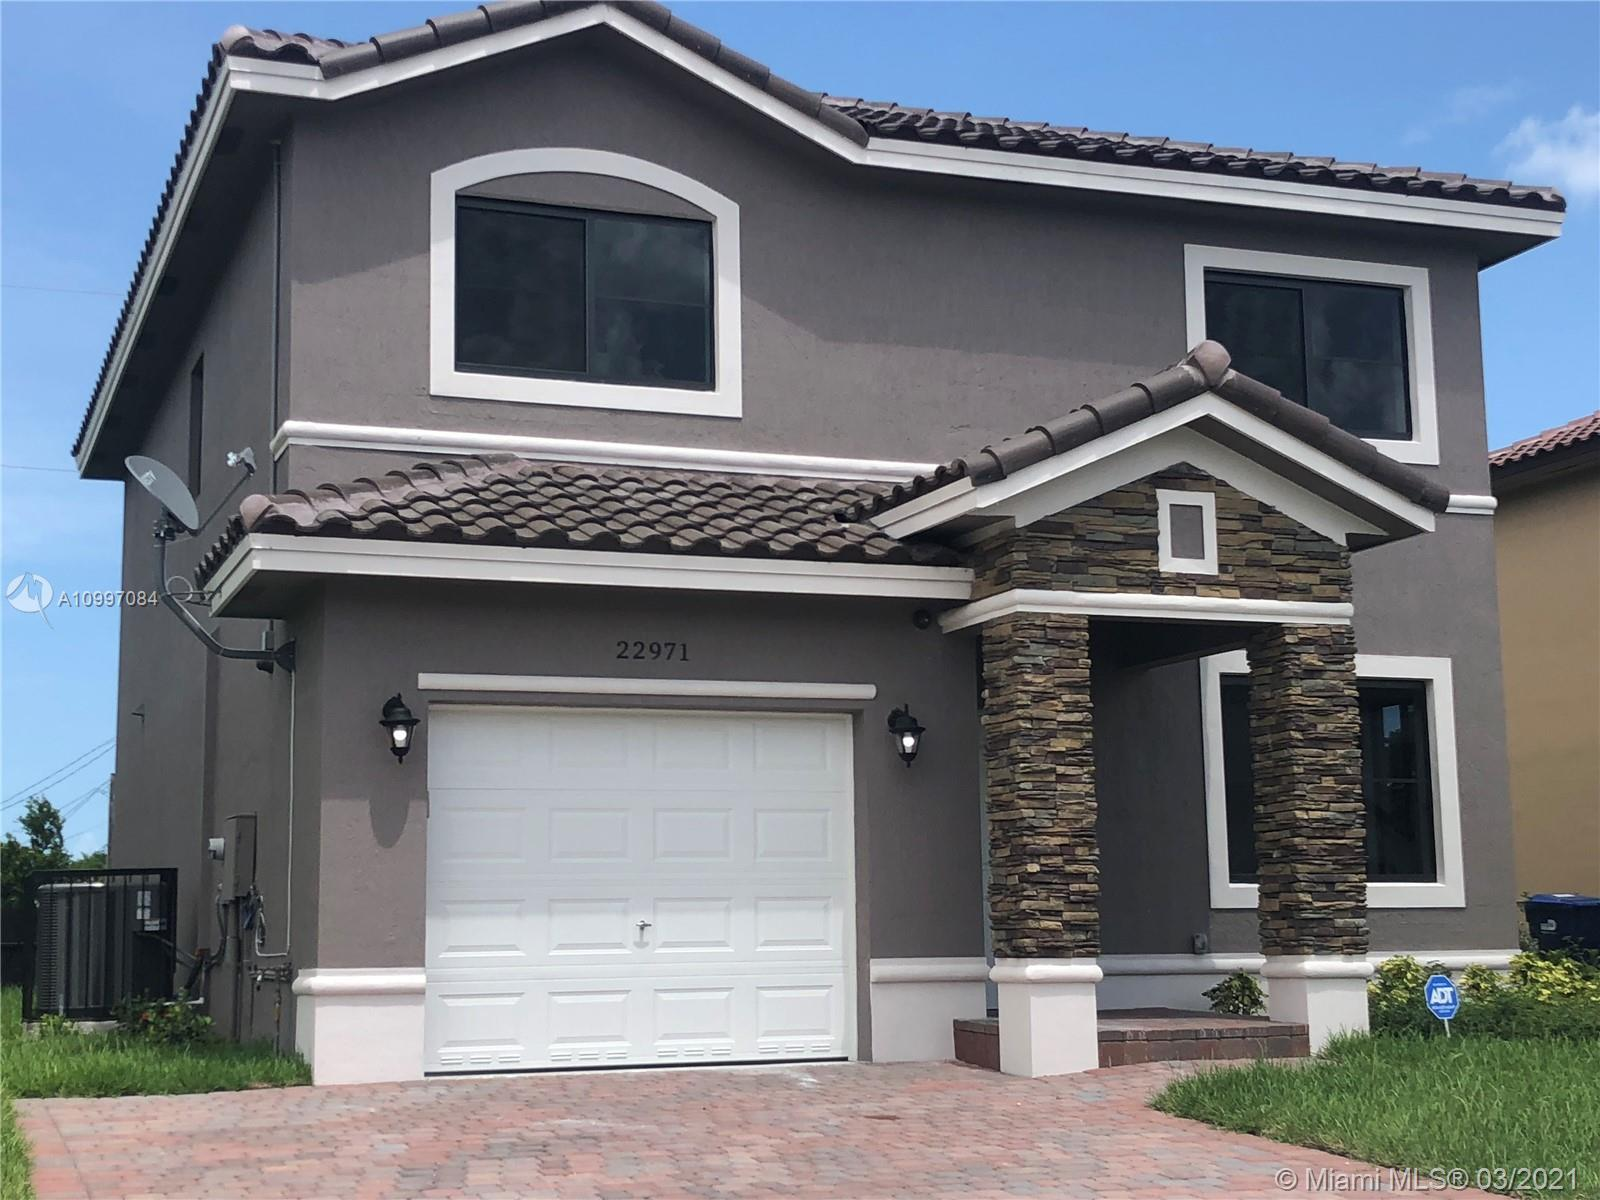 New Construction, $30 HOA, NO CDD Tax,  Only 29 exclusive homes. Spacious interior rooms, modern and elegant kitchens & striking exterior facades are among the many characteristics. 20x20 Ceramic Floors, Stainless Steel Appliances, Granite Counter tops & wood cabinets in Kitchen and Bathrooms and smart system included (S.H.I.P.) Incentives for Closings available when using Builder's Preferred Lender. Call/Text LISTING AGENT for details, appointments and incentives.